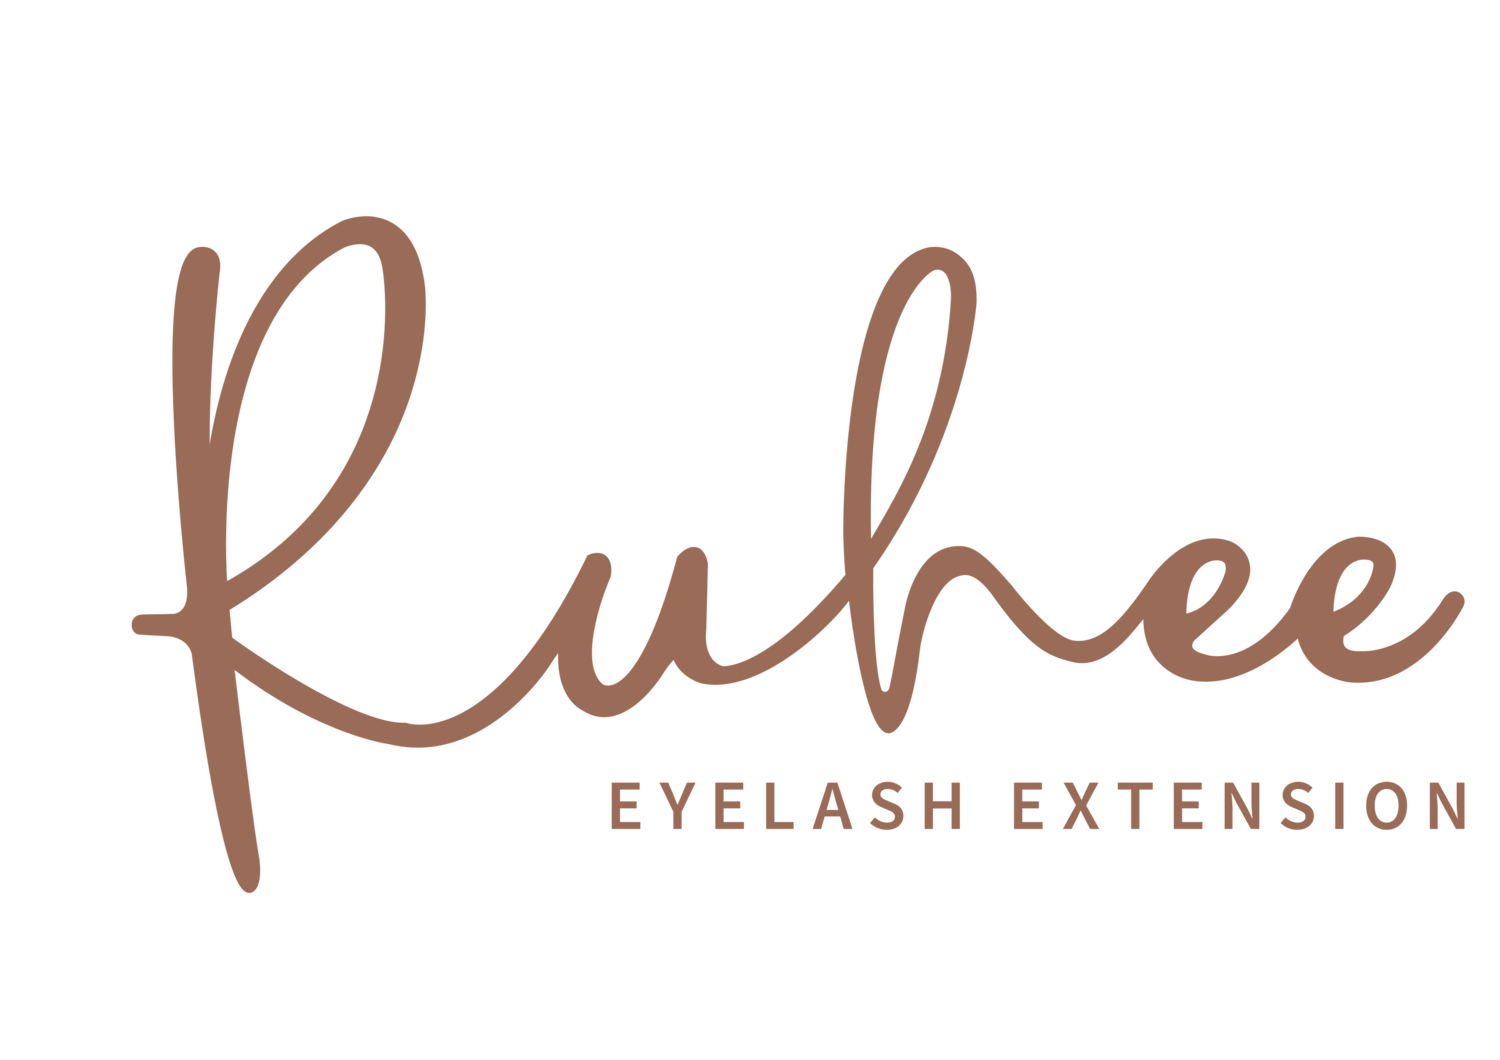 Ruhee Eyelash Extension